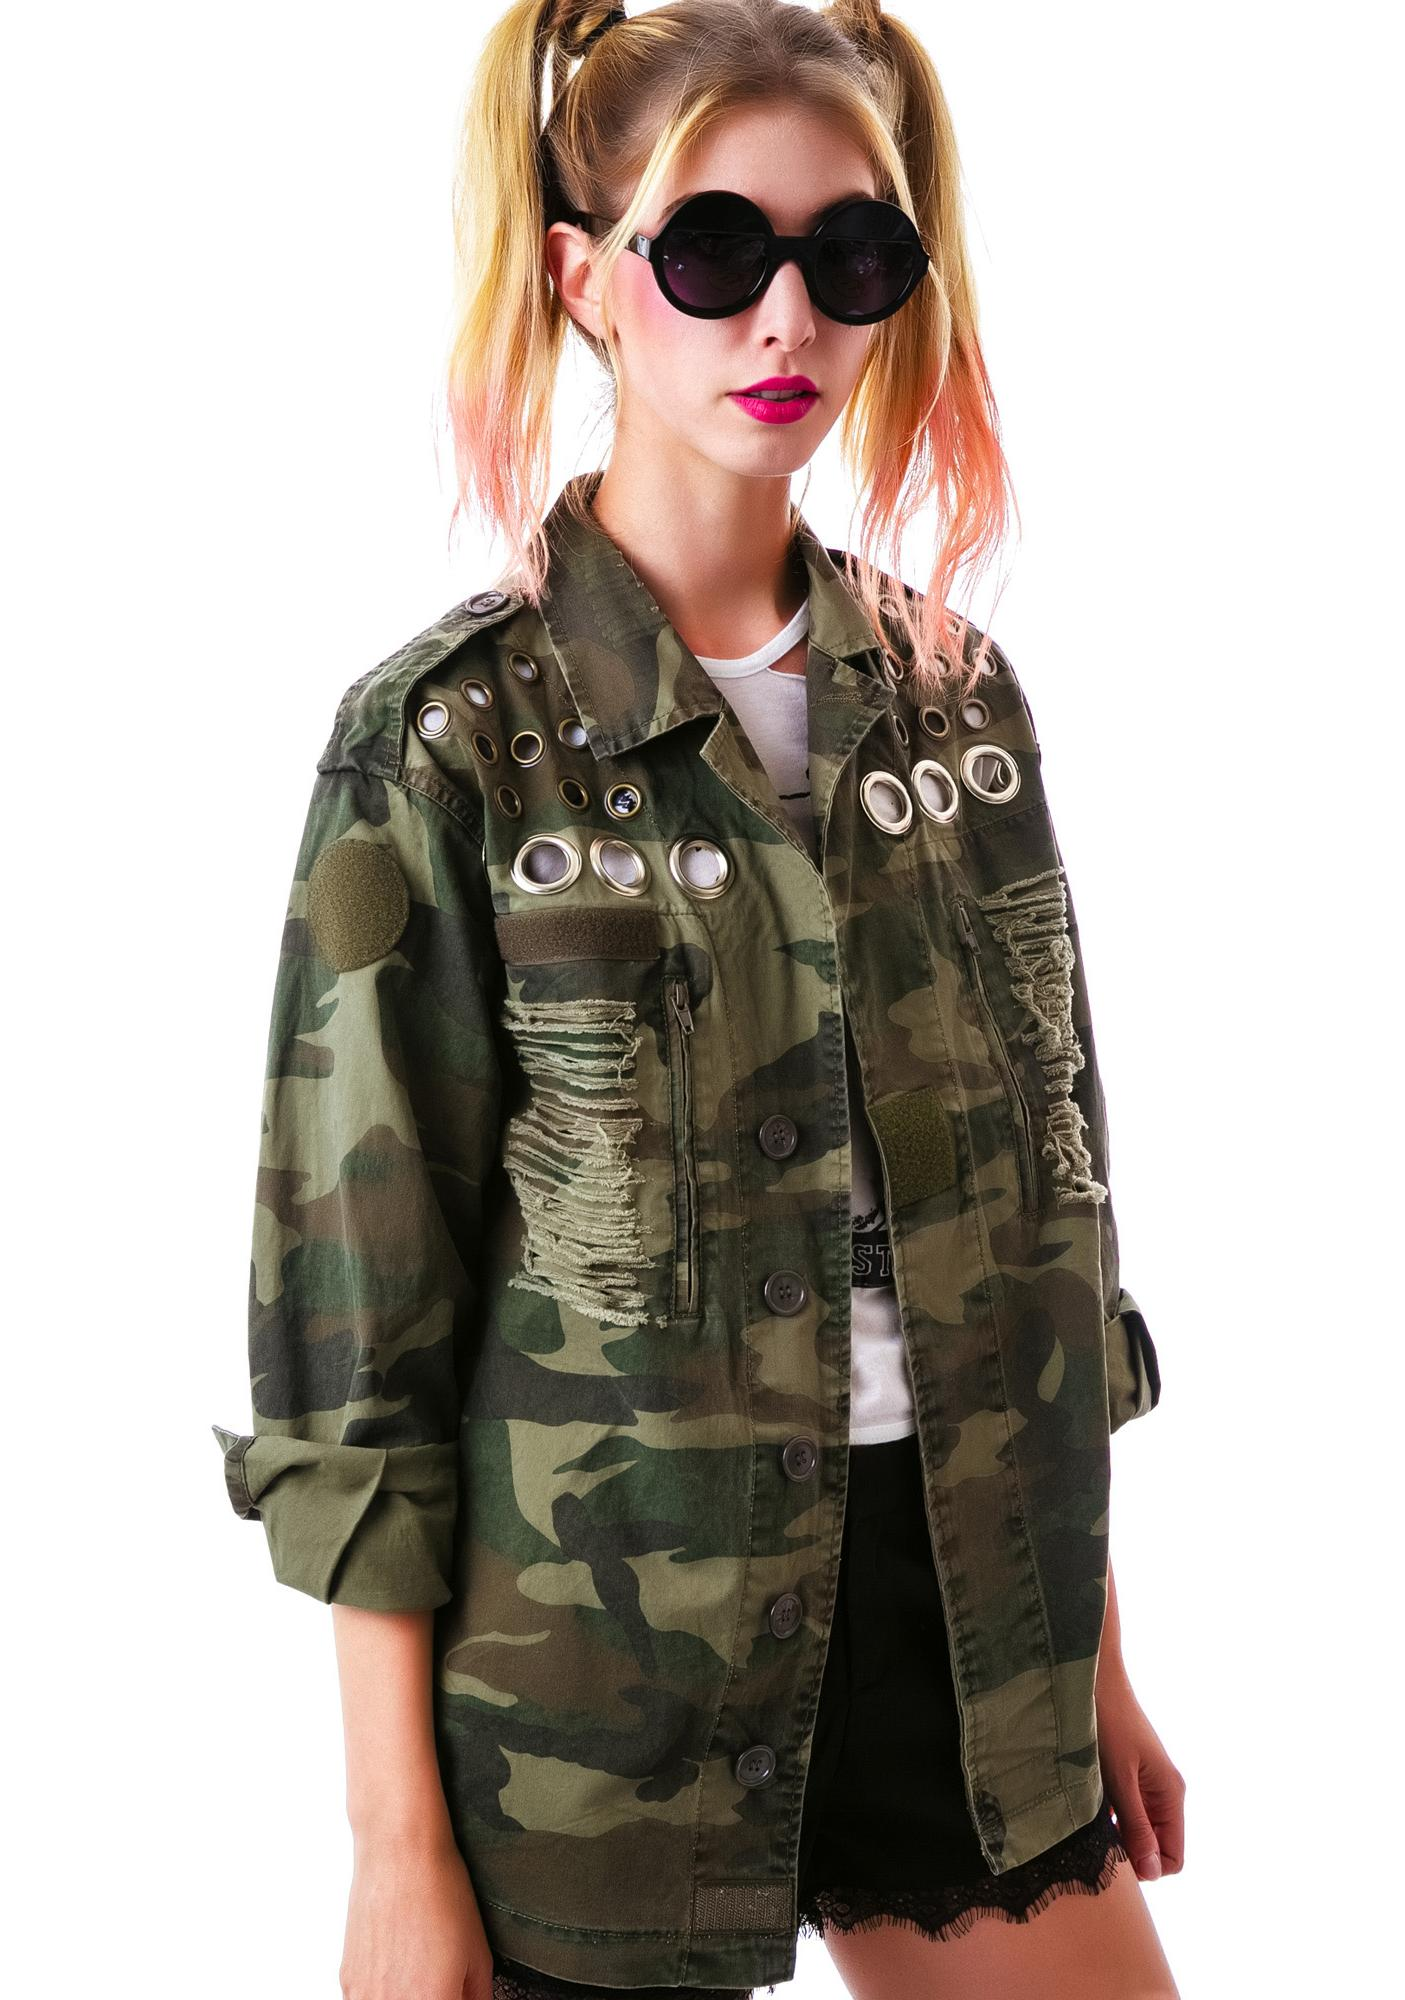 Call of Duty Camo Jacket